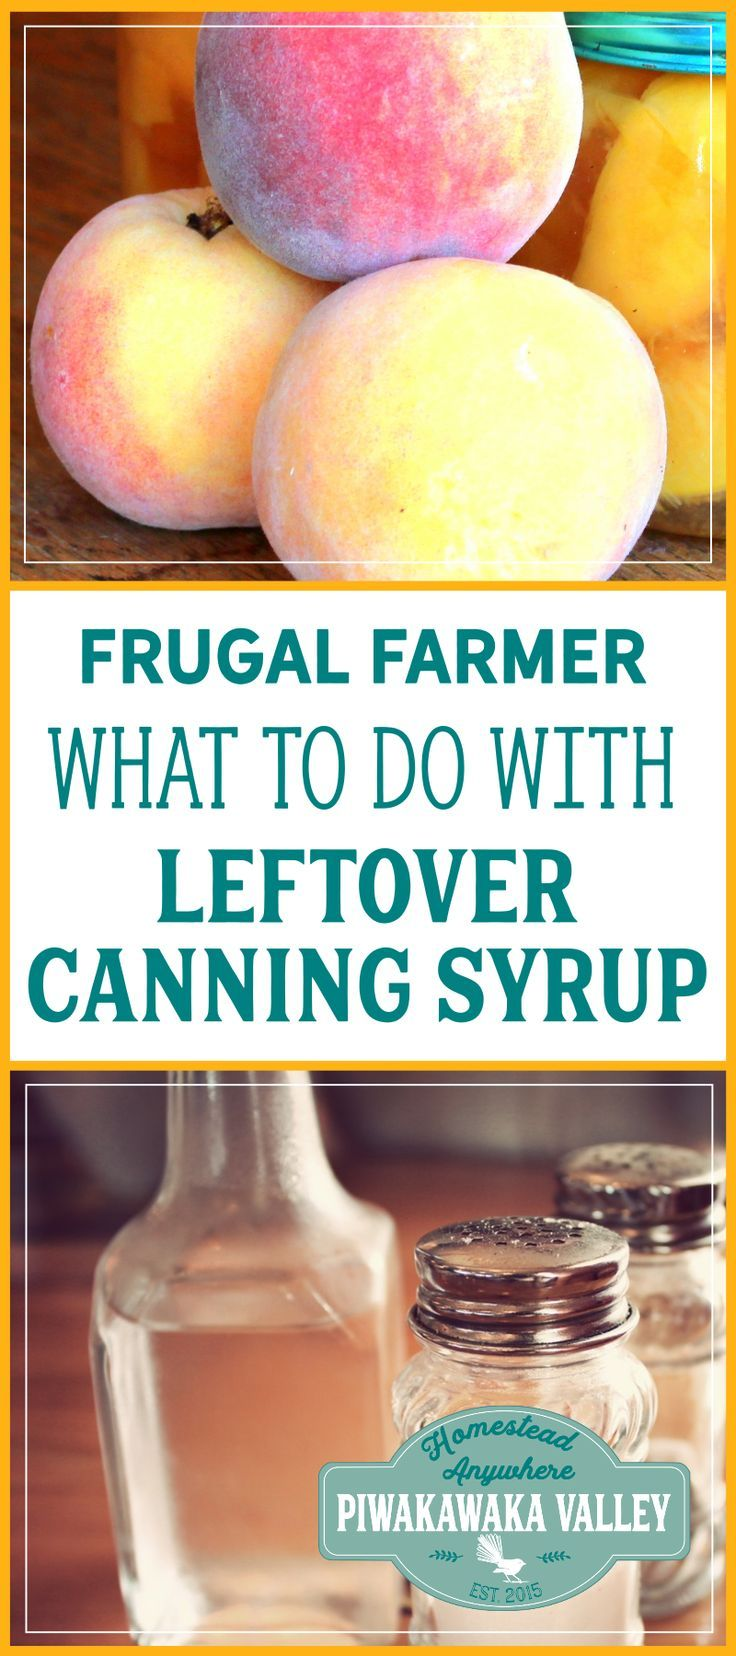 Super frugal tip: How to use leftover canning syrup for something productive! Fruit vinegar recipe. fermented foods, fermented pickles, sea salt fermented vegetables, fermented recipes, easy fermentation for beginners, how to ferment vegetables, fermentation tips, step by step fermenting food, health, families, immune system, gut health, gut biome, natural health, weston price, whey fermenting vegetables to preserve them. #ferment #guthealth #kombucha #fermenting #homesteading #naturalhealth